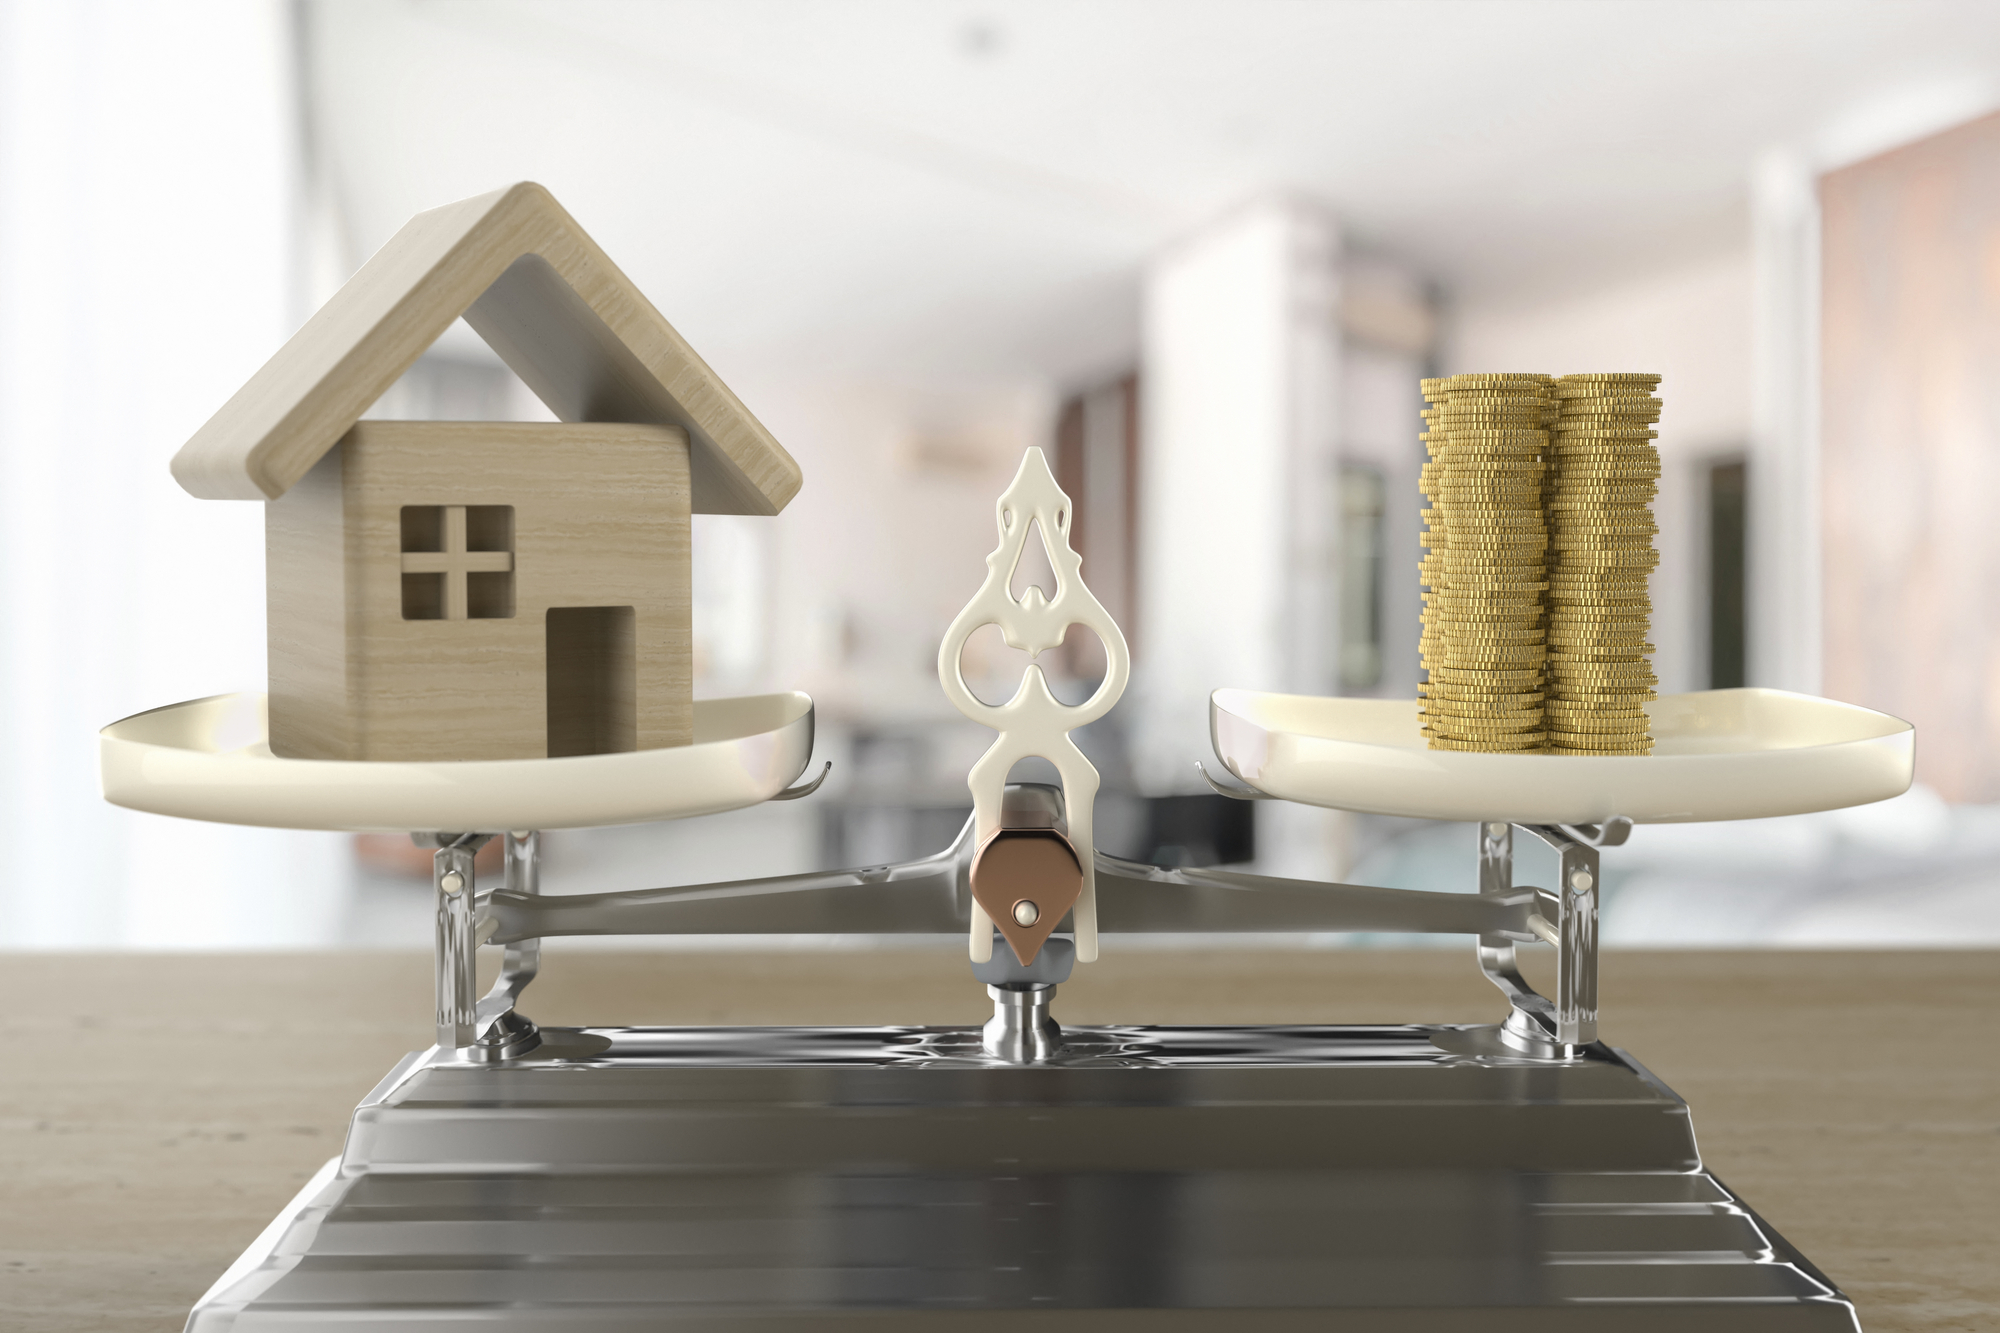 House and coins on the scale as an illustration of a home loan and other real estate expenses